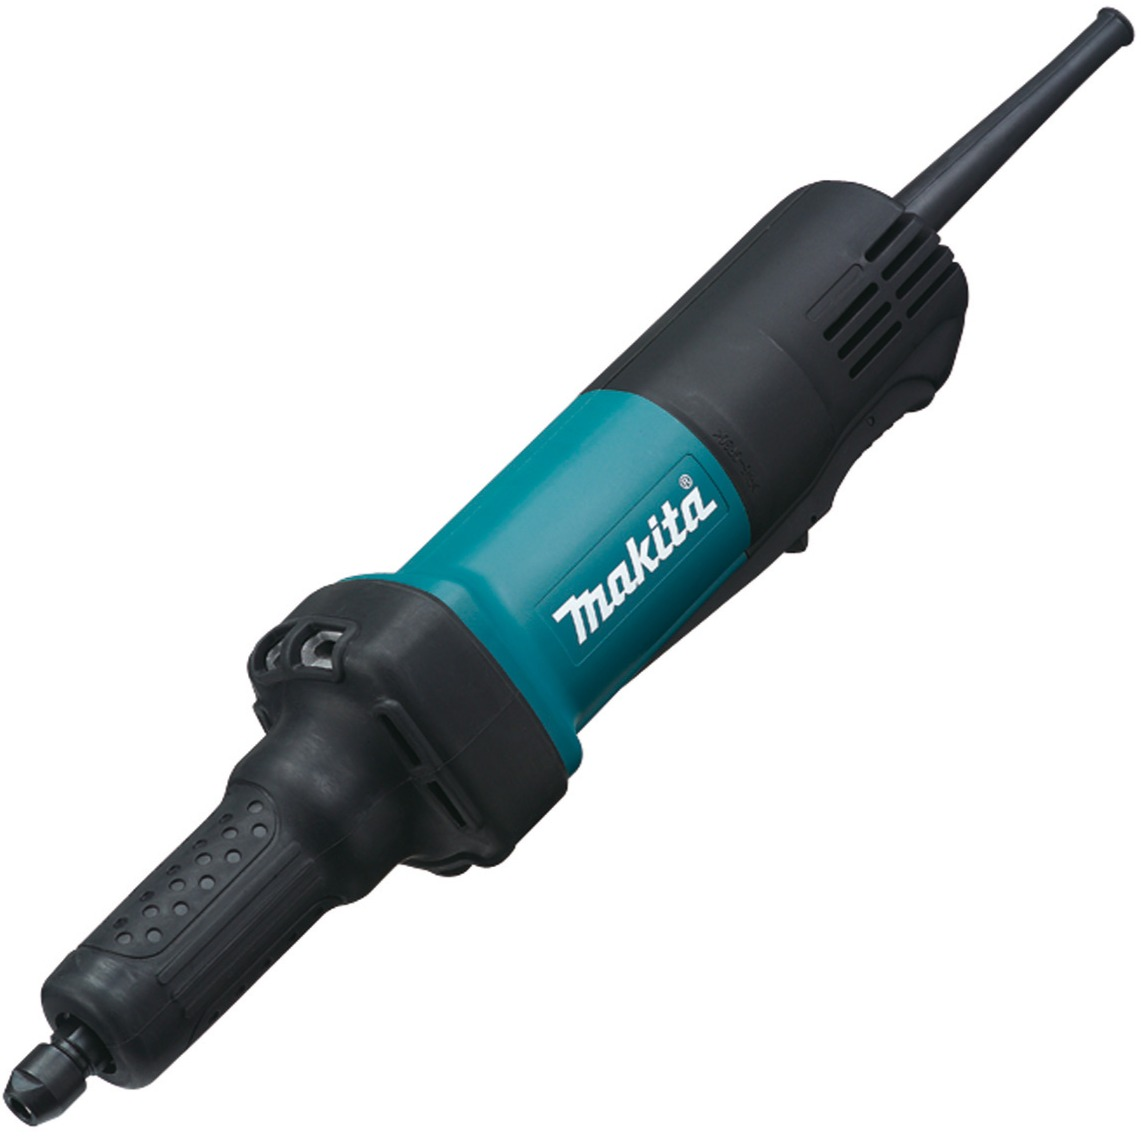 Retificadeira GD0600 400W 6 mm 14 220 V - Makita